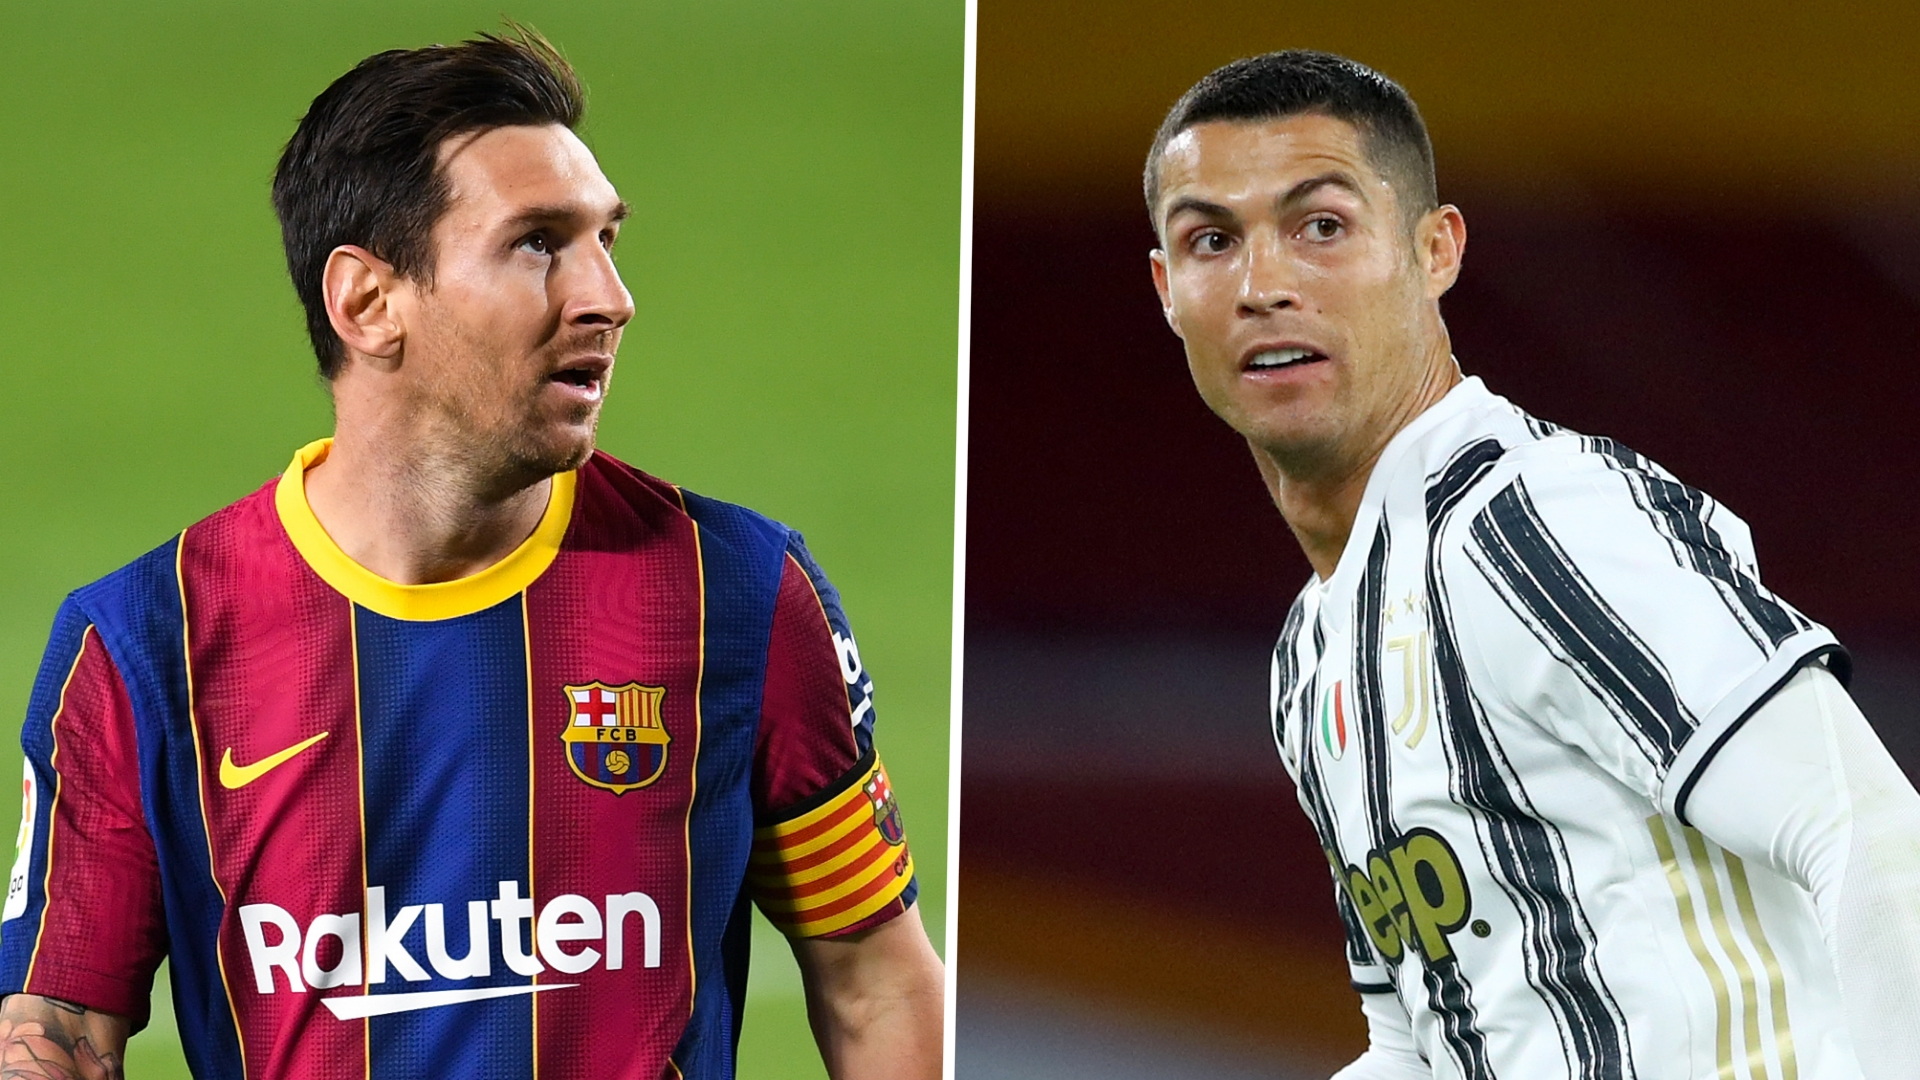 Why Do Fans Chant Messi Messi At Cristiano Ronaldo Goal Com